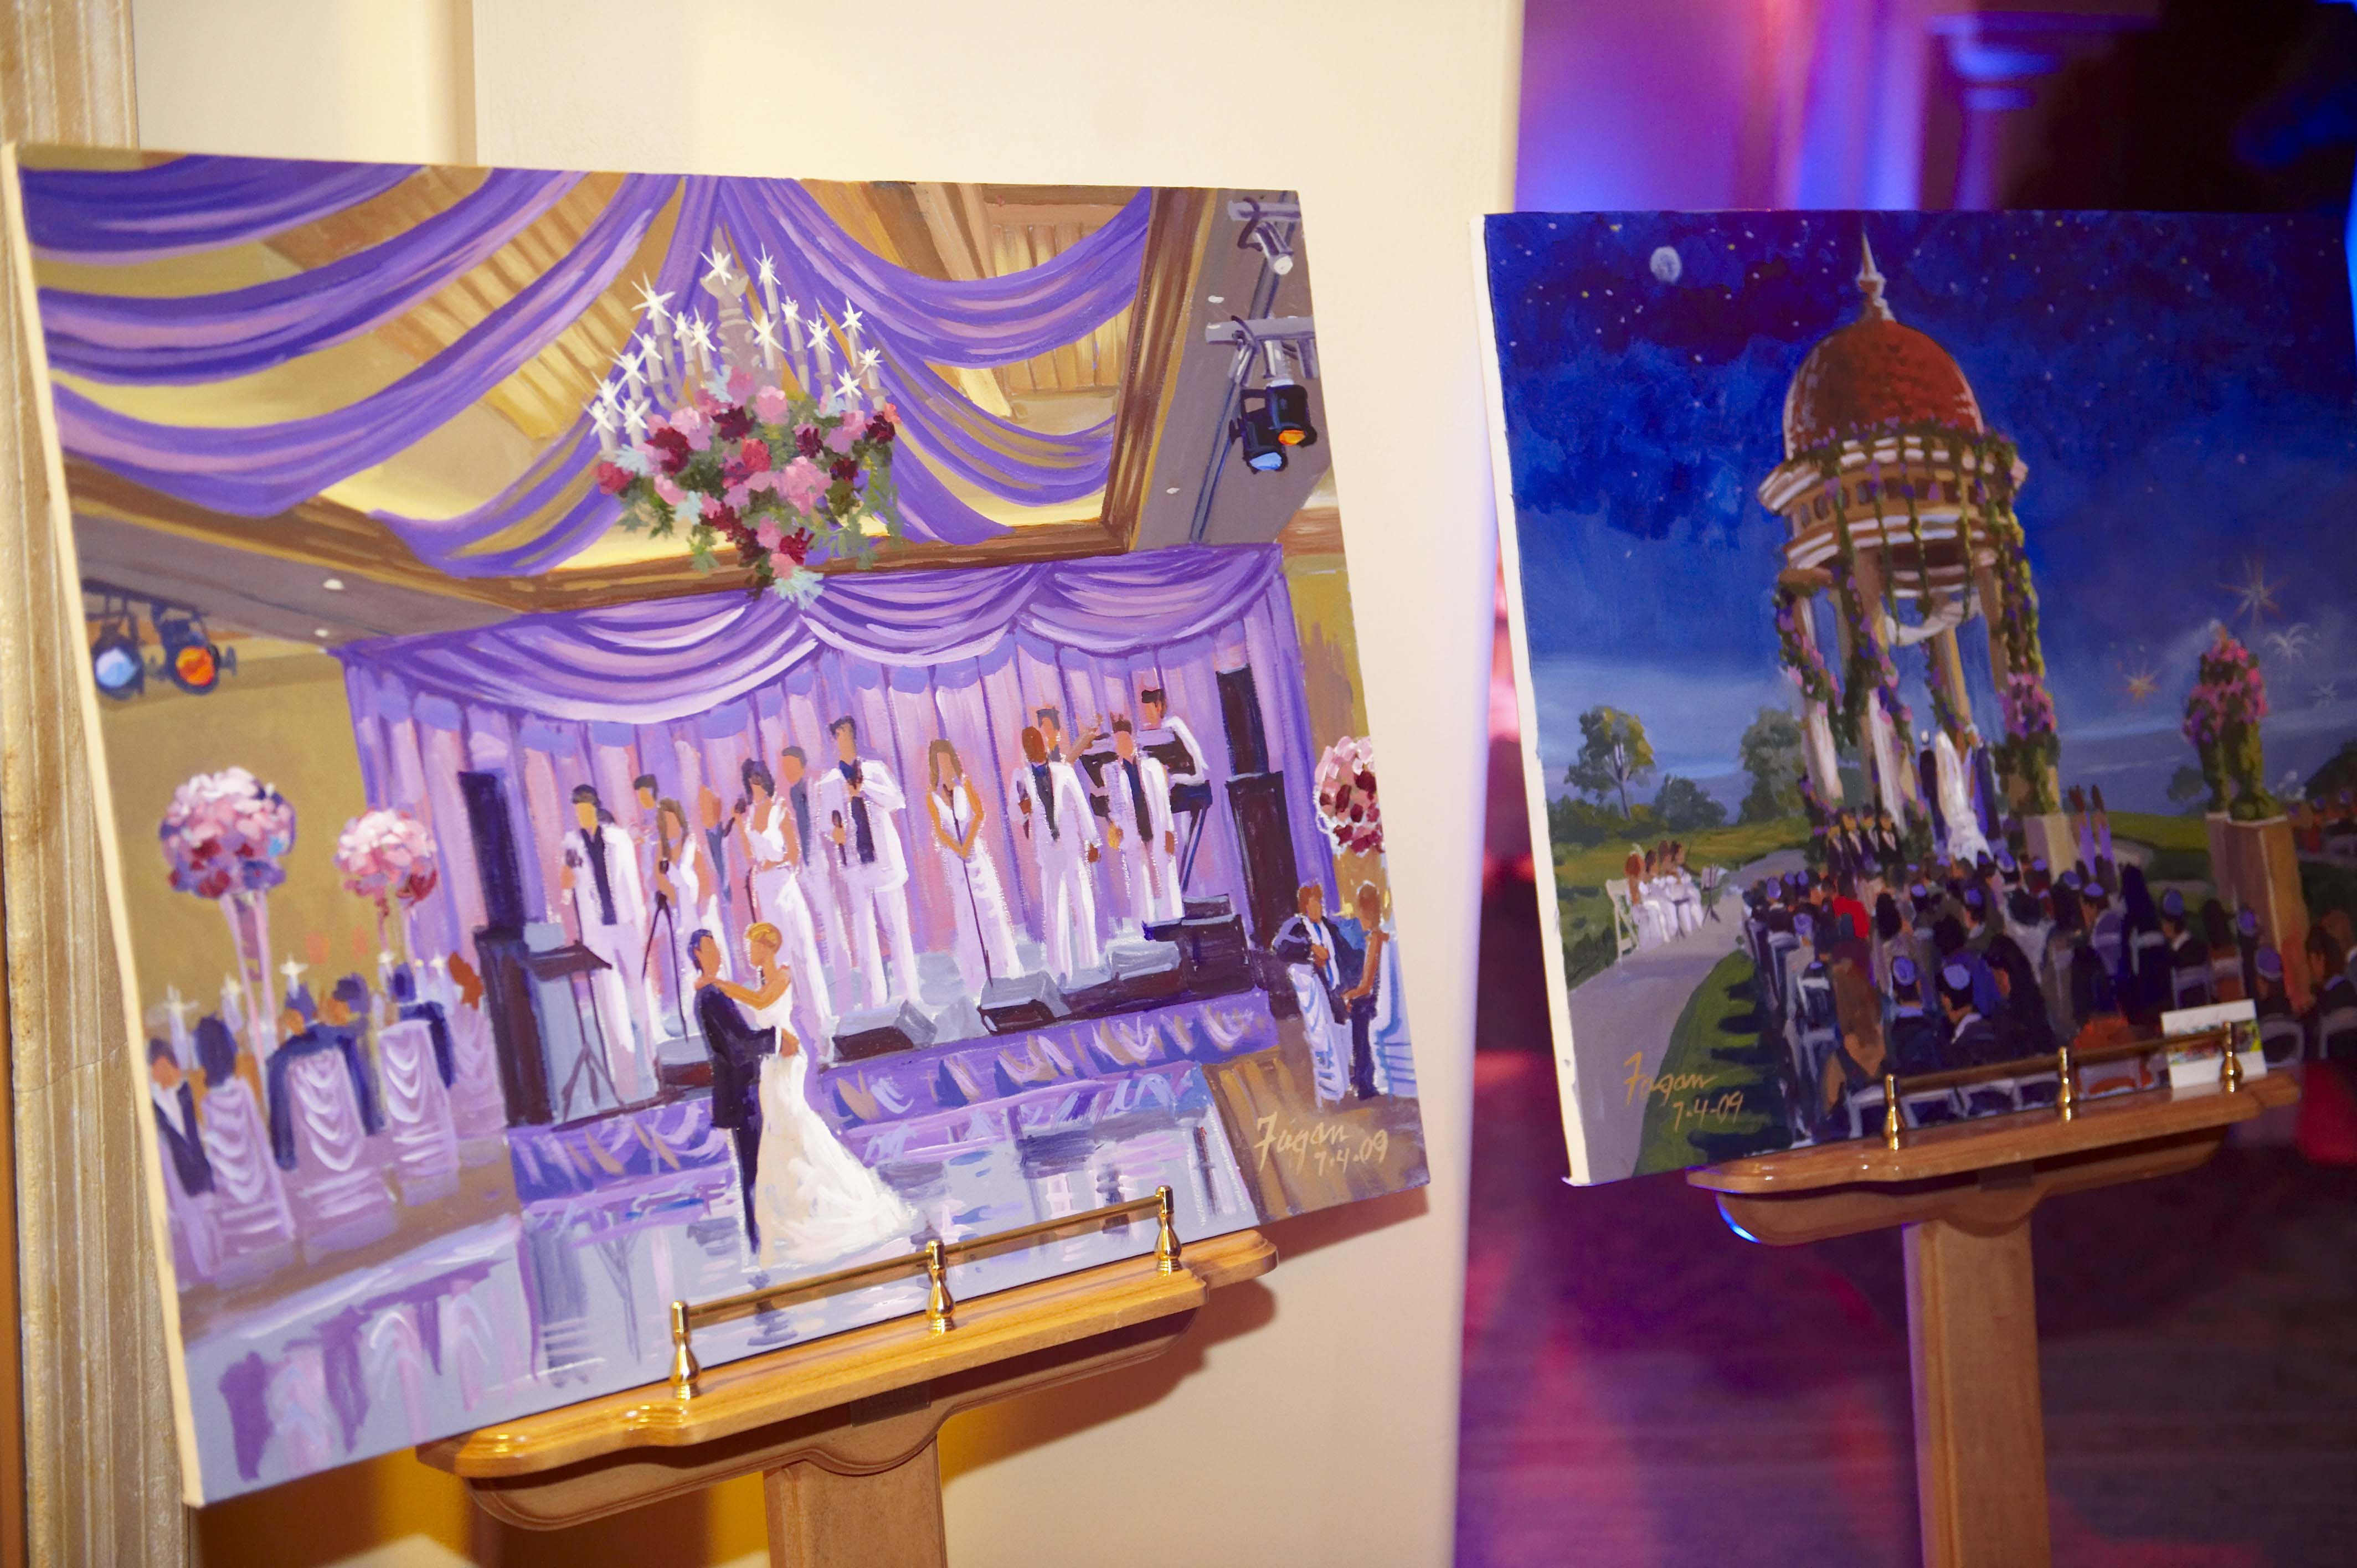 live paintings of wedding ceremony and reception